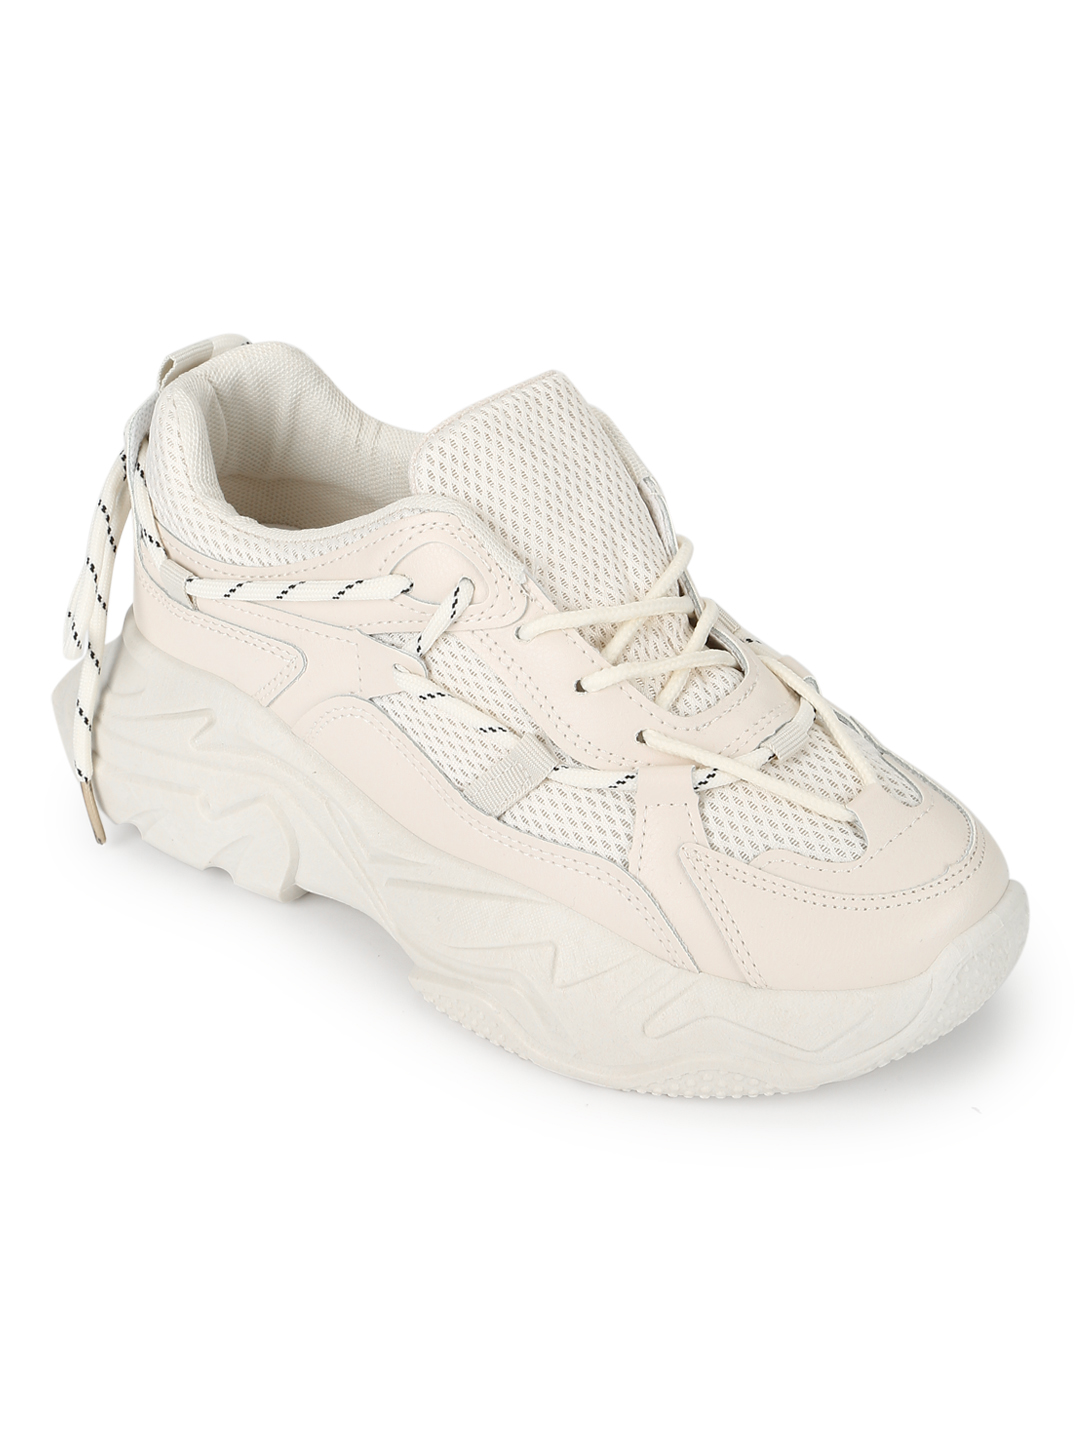 Truffle Collection | Truffle Collection Total Sand PU Side Lace Pattern Chunky Sneakers